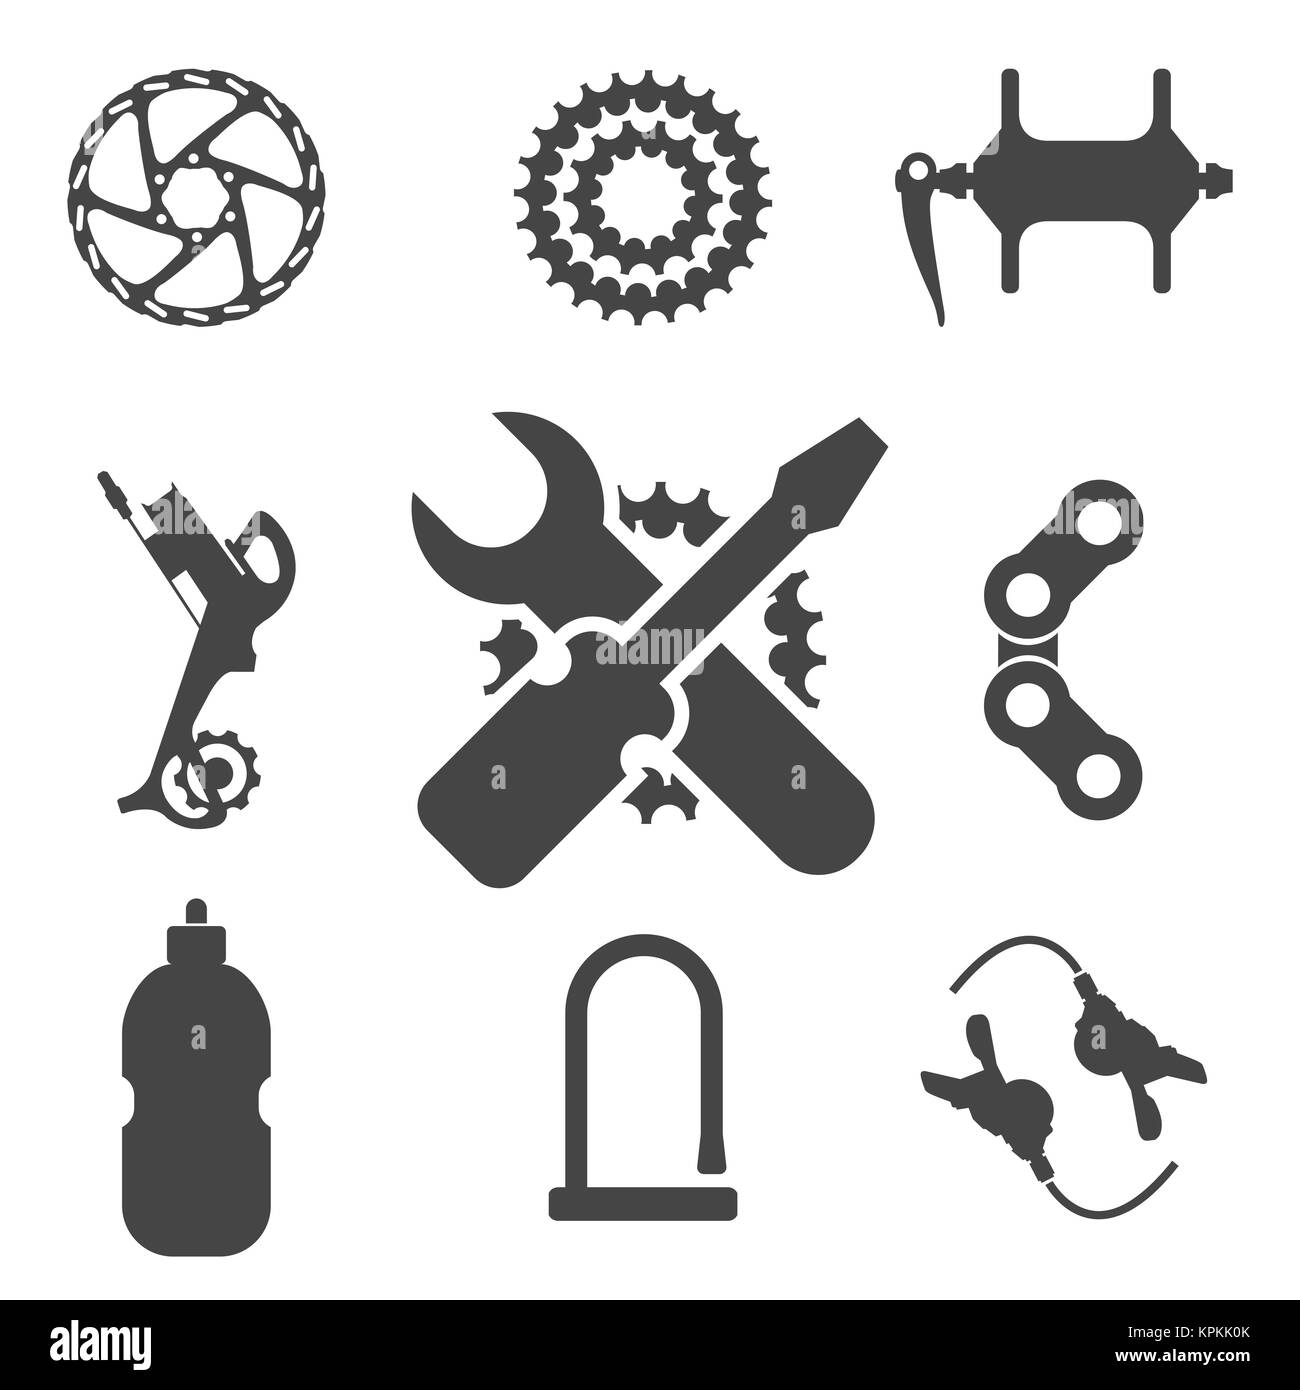 Bicycle Icon Stock Photos & Bicycle Icon Stock Images